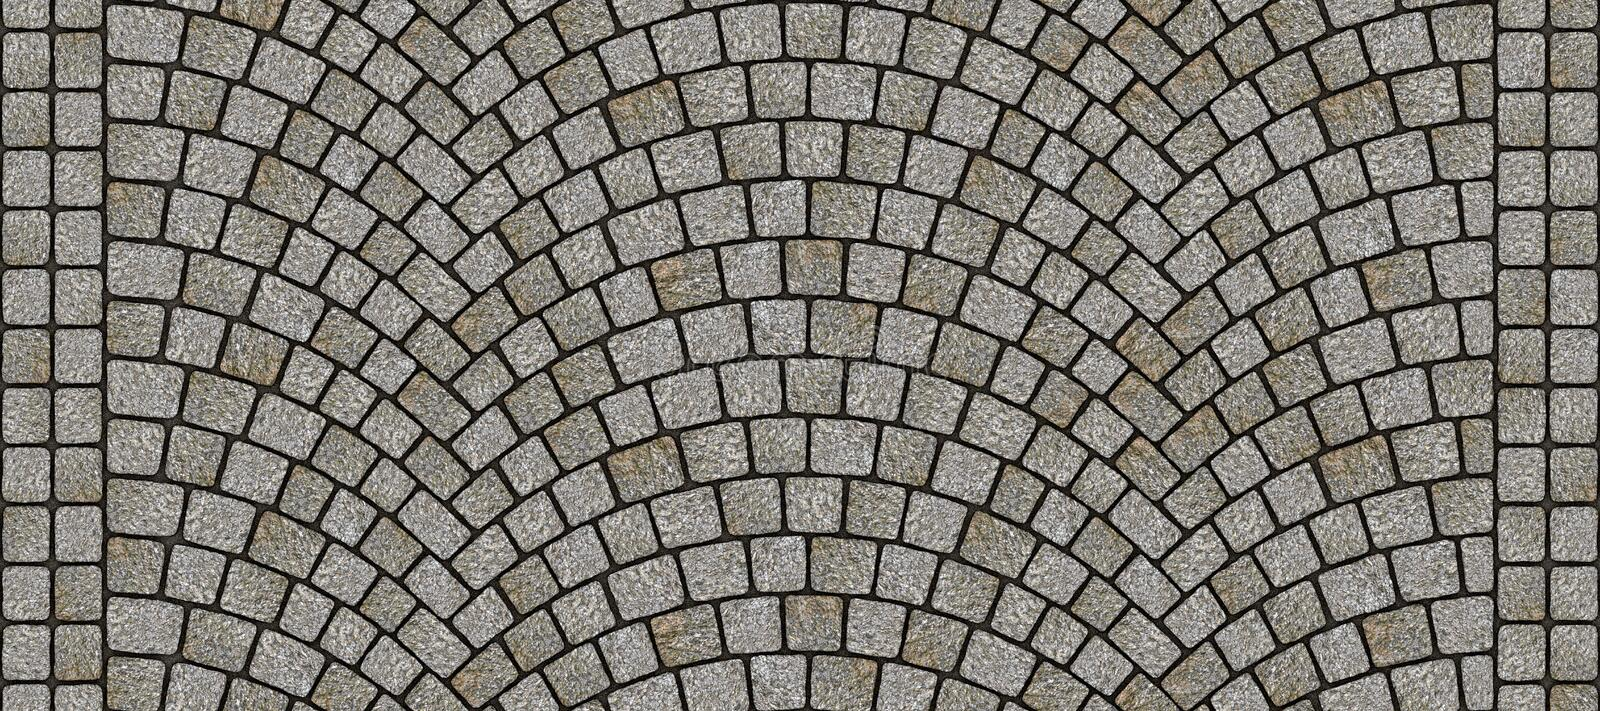 Road curved cobblestone texture 078 vector illustration